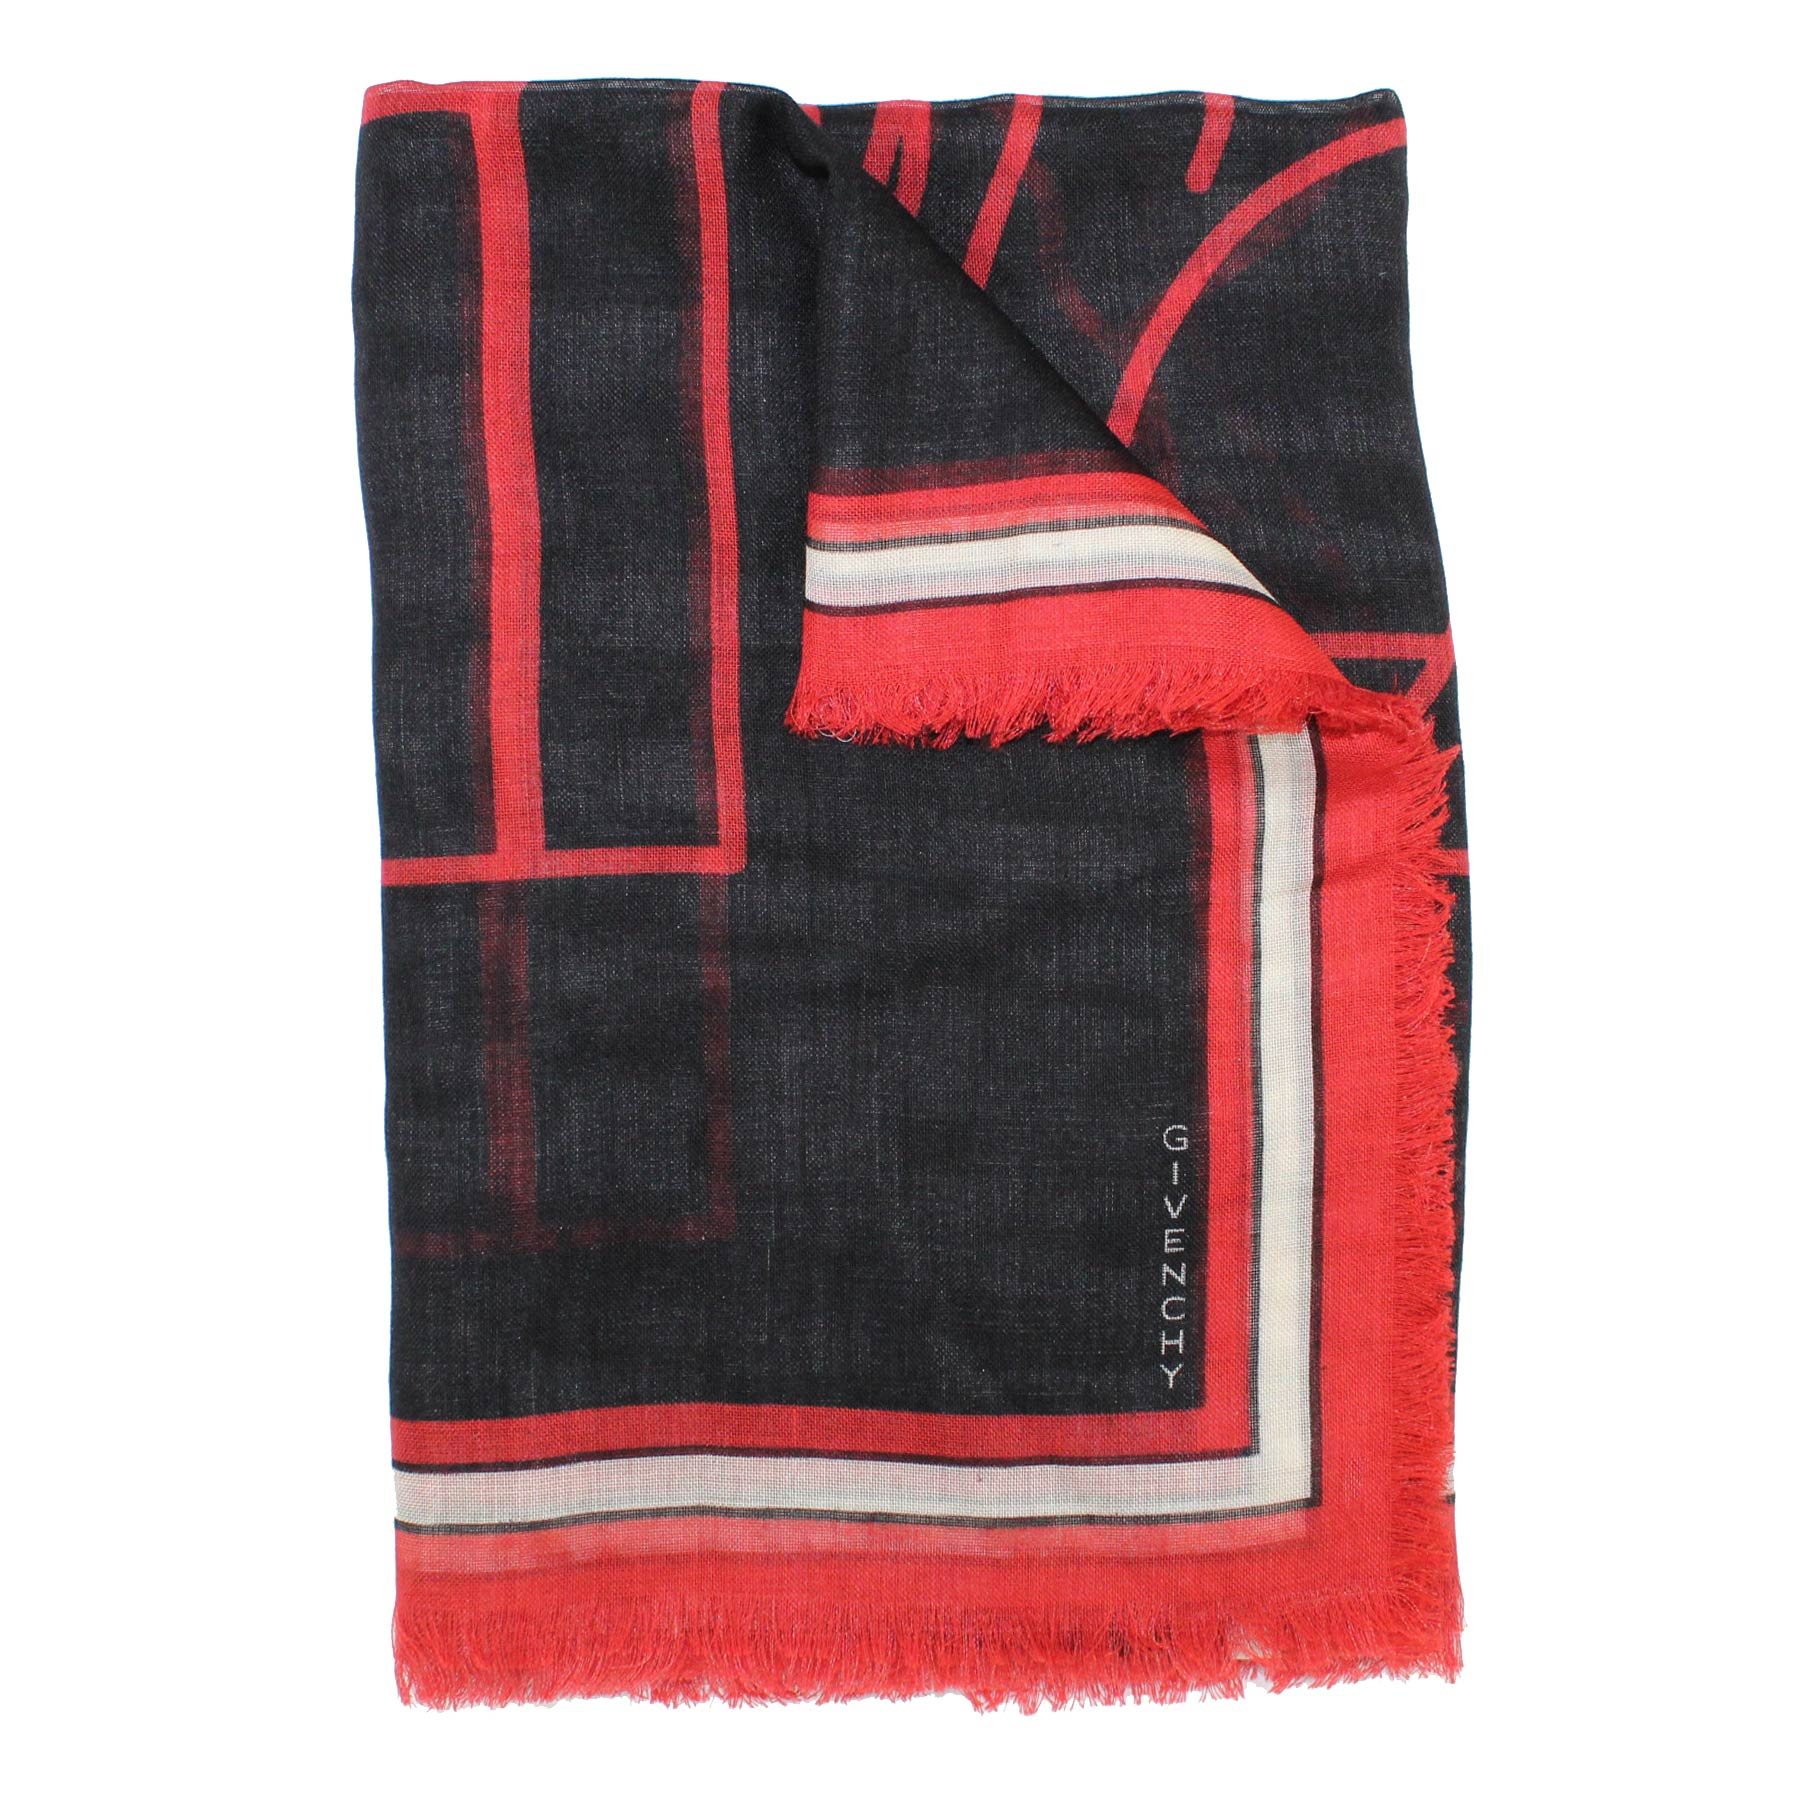 Givenchy Scarf Bambi - Extra Large Square Cashmere Silk Scarf